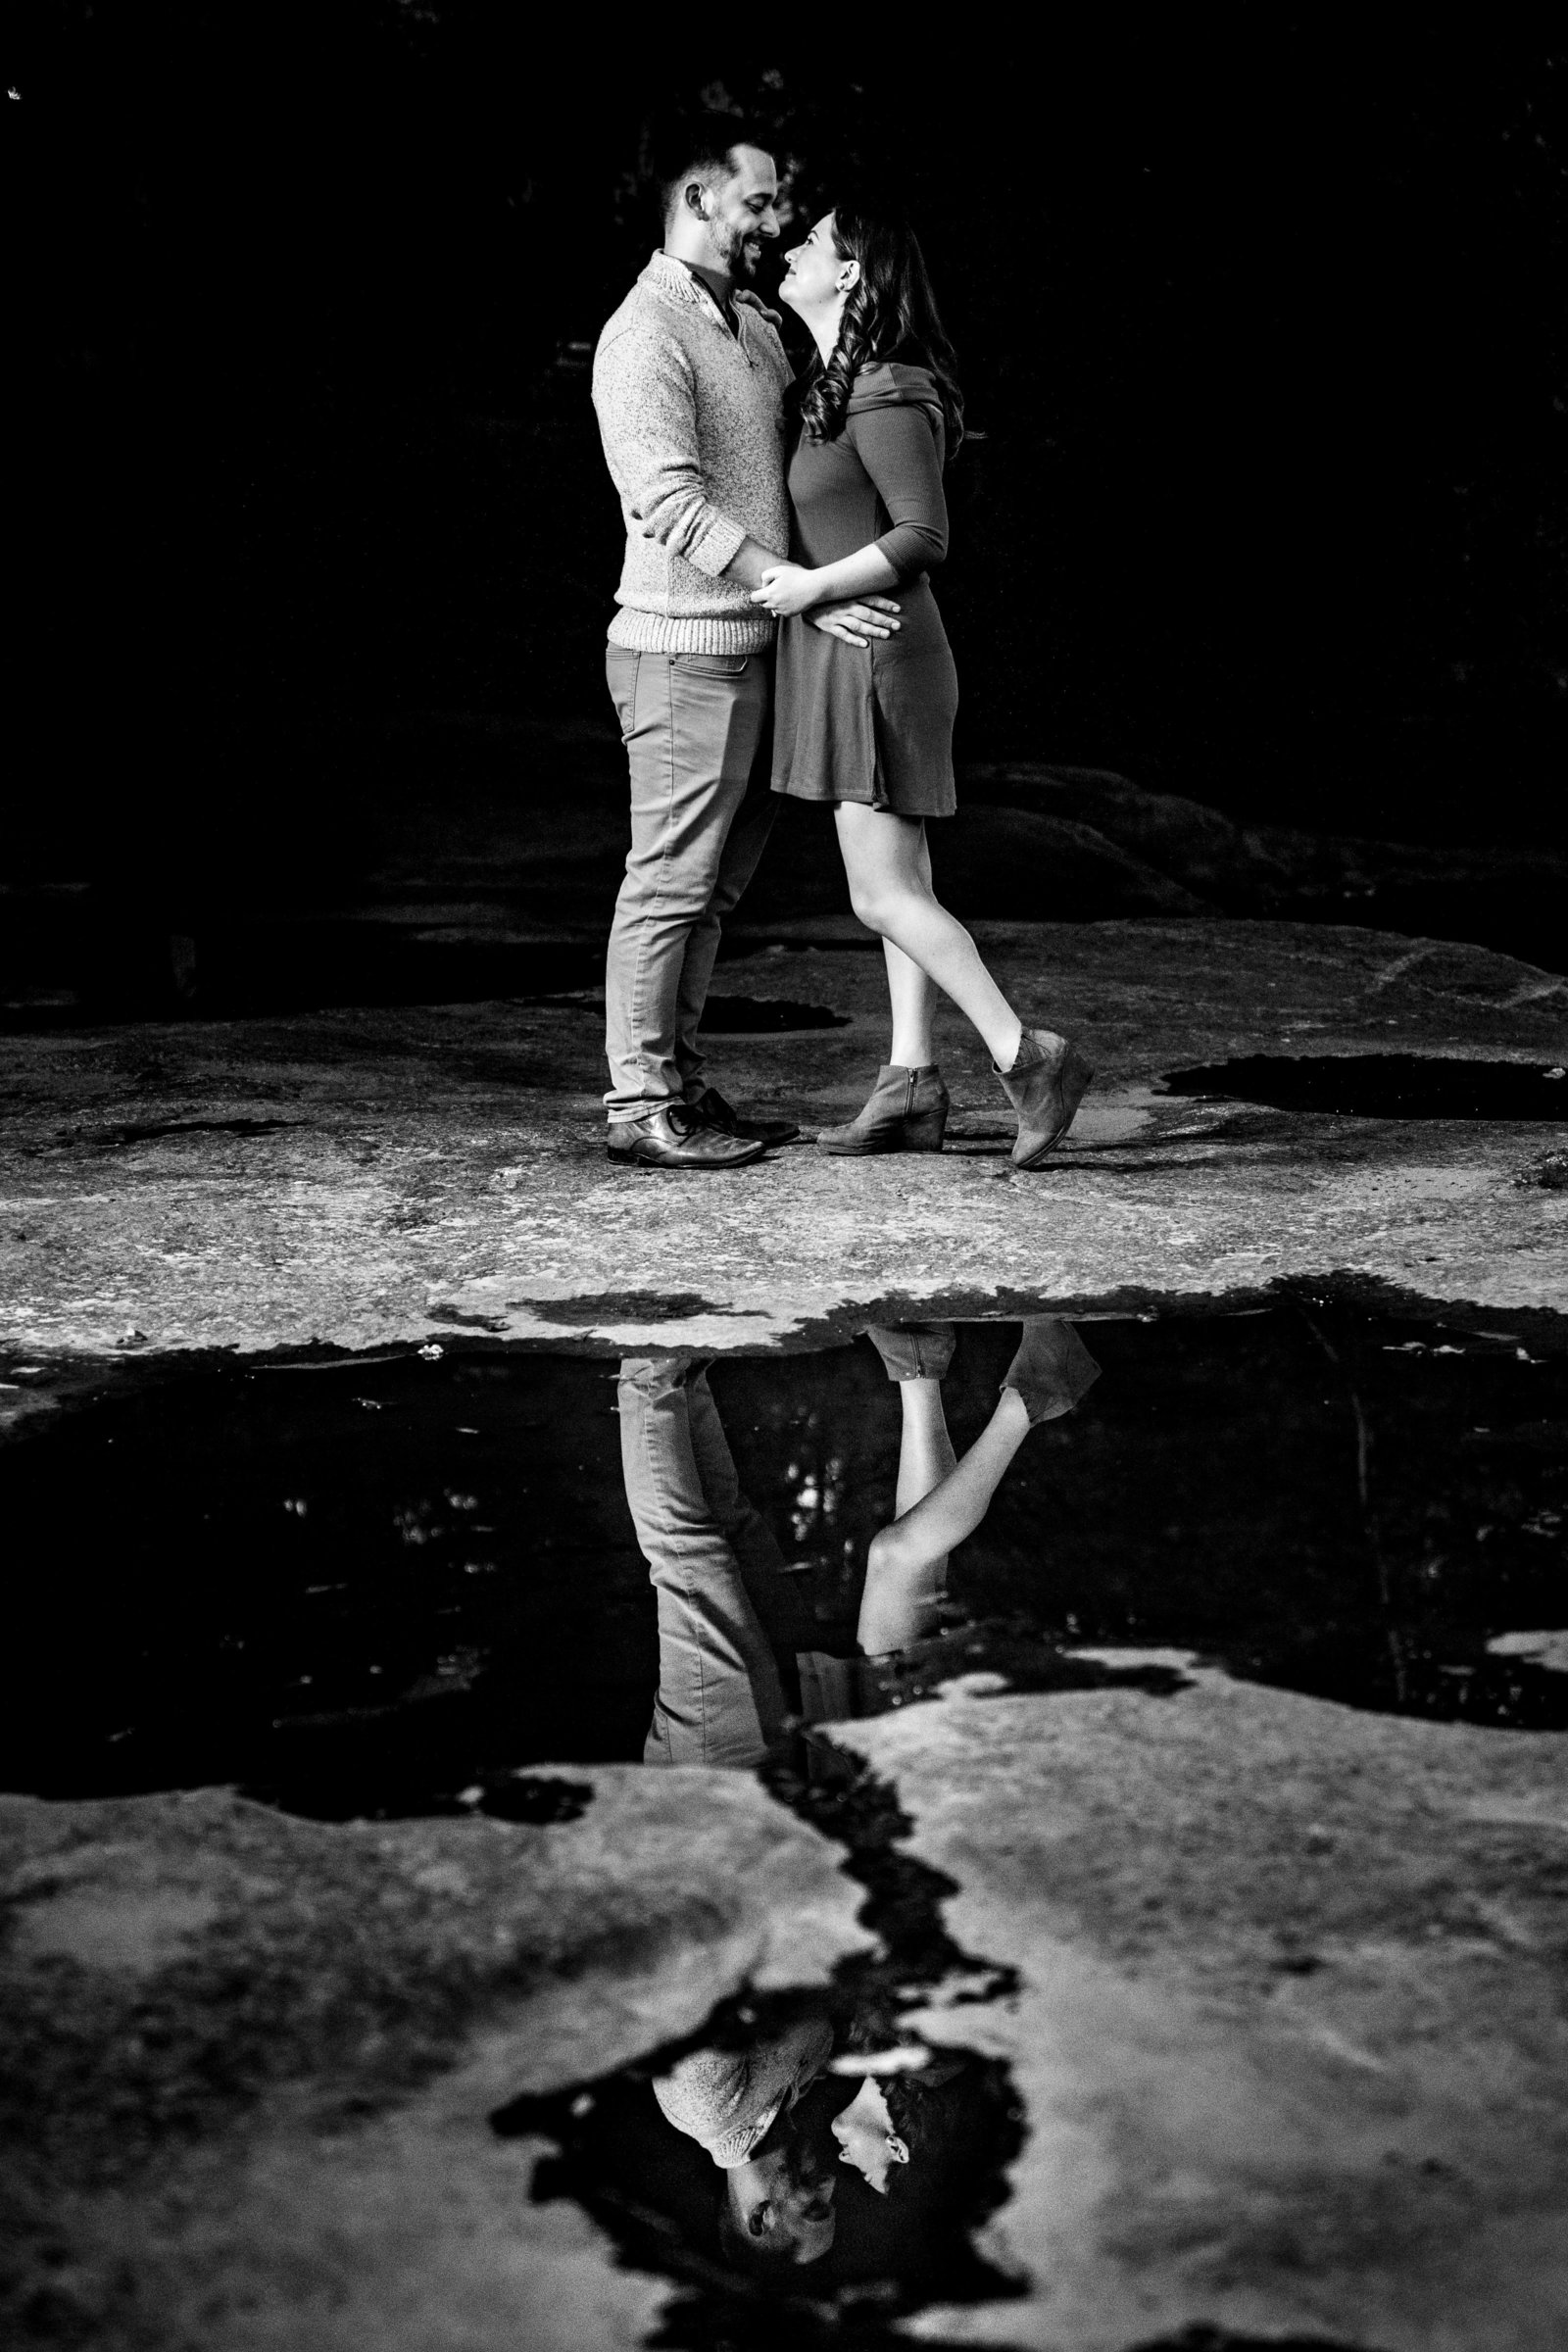 couple standing near puddle with reflection